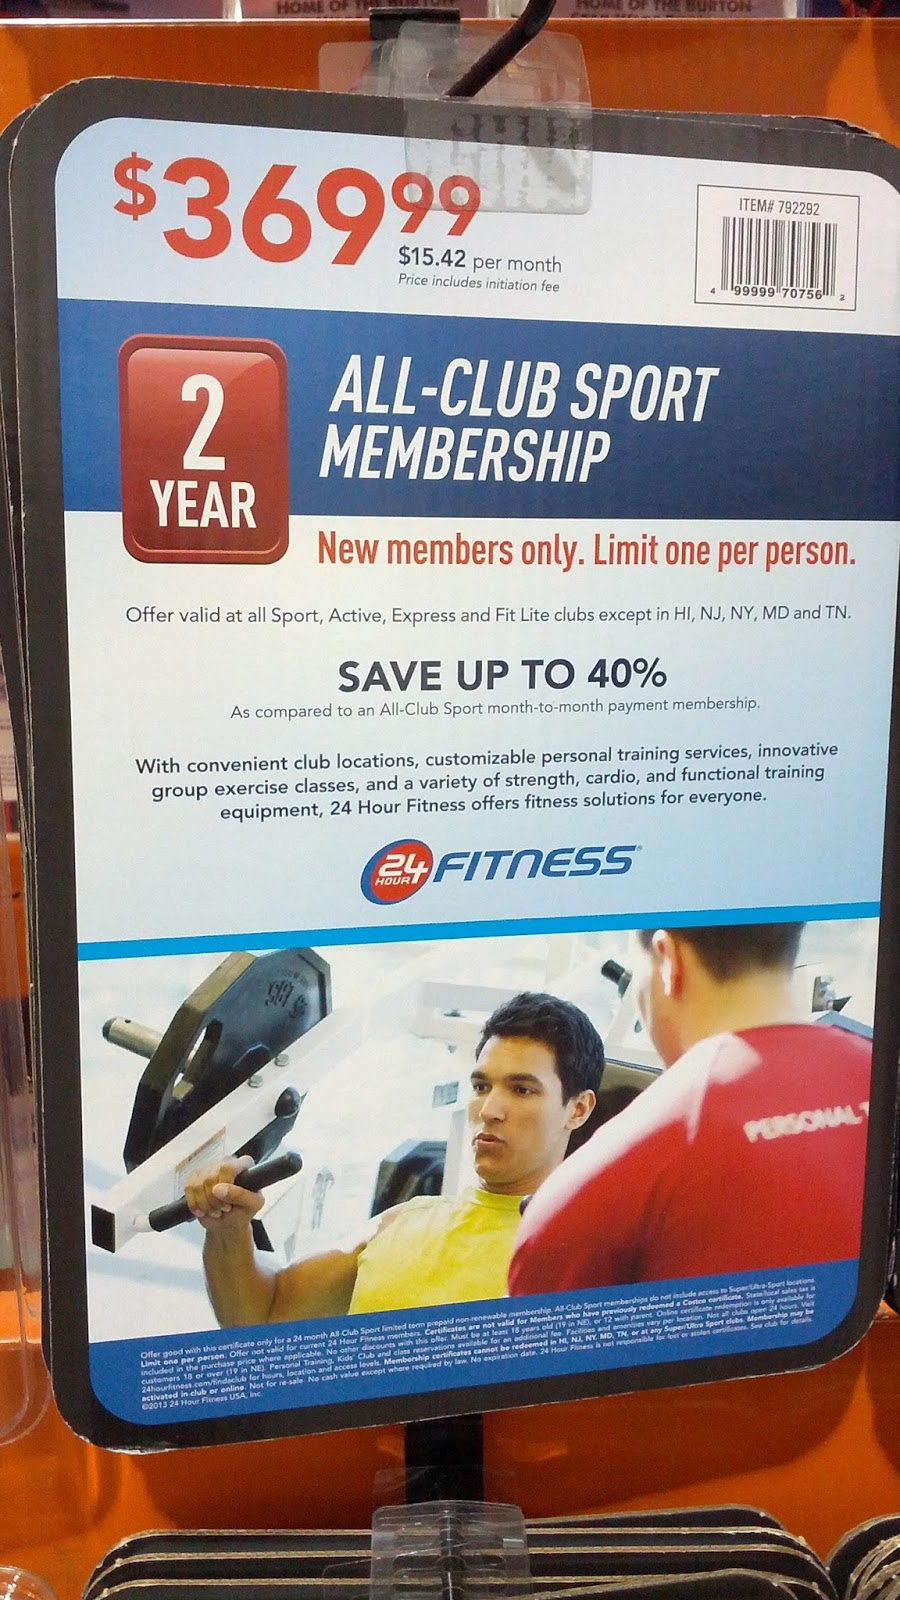 Costco is known for its membership perks, many of which extend beyond the four walls of the store, like cheap gas, vacation deals, and insurance policy discounts. It turns out, a cheap gym.